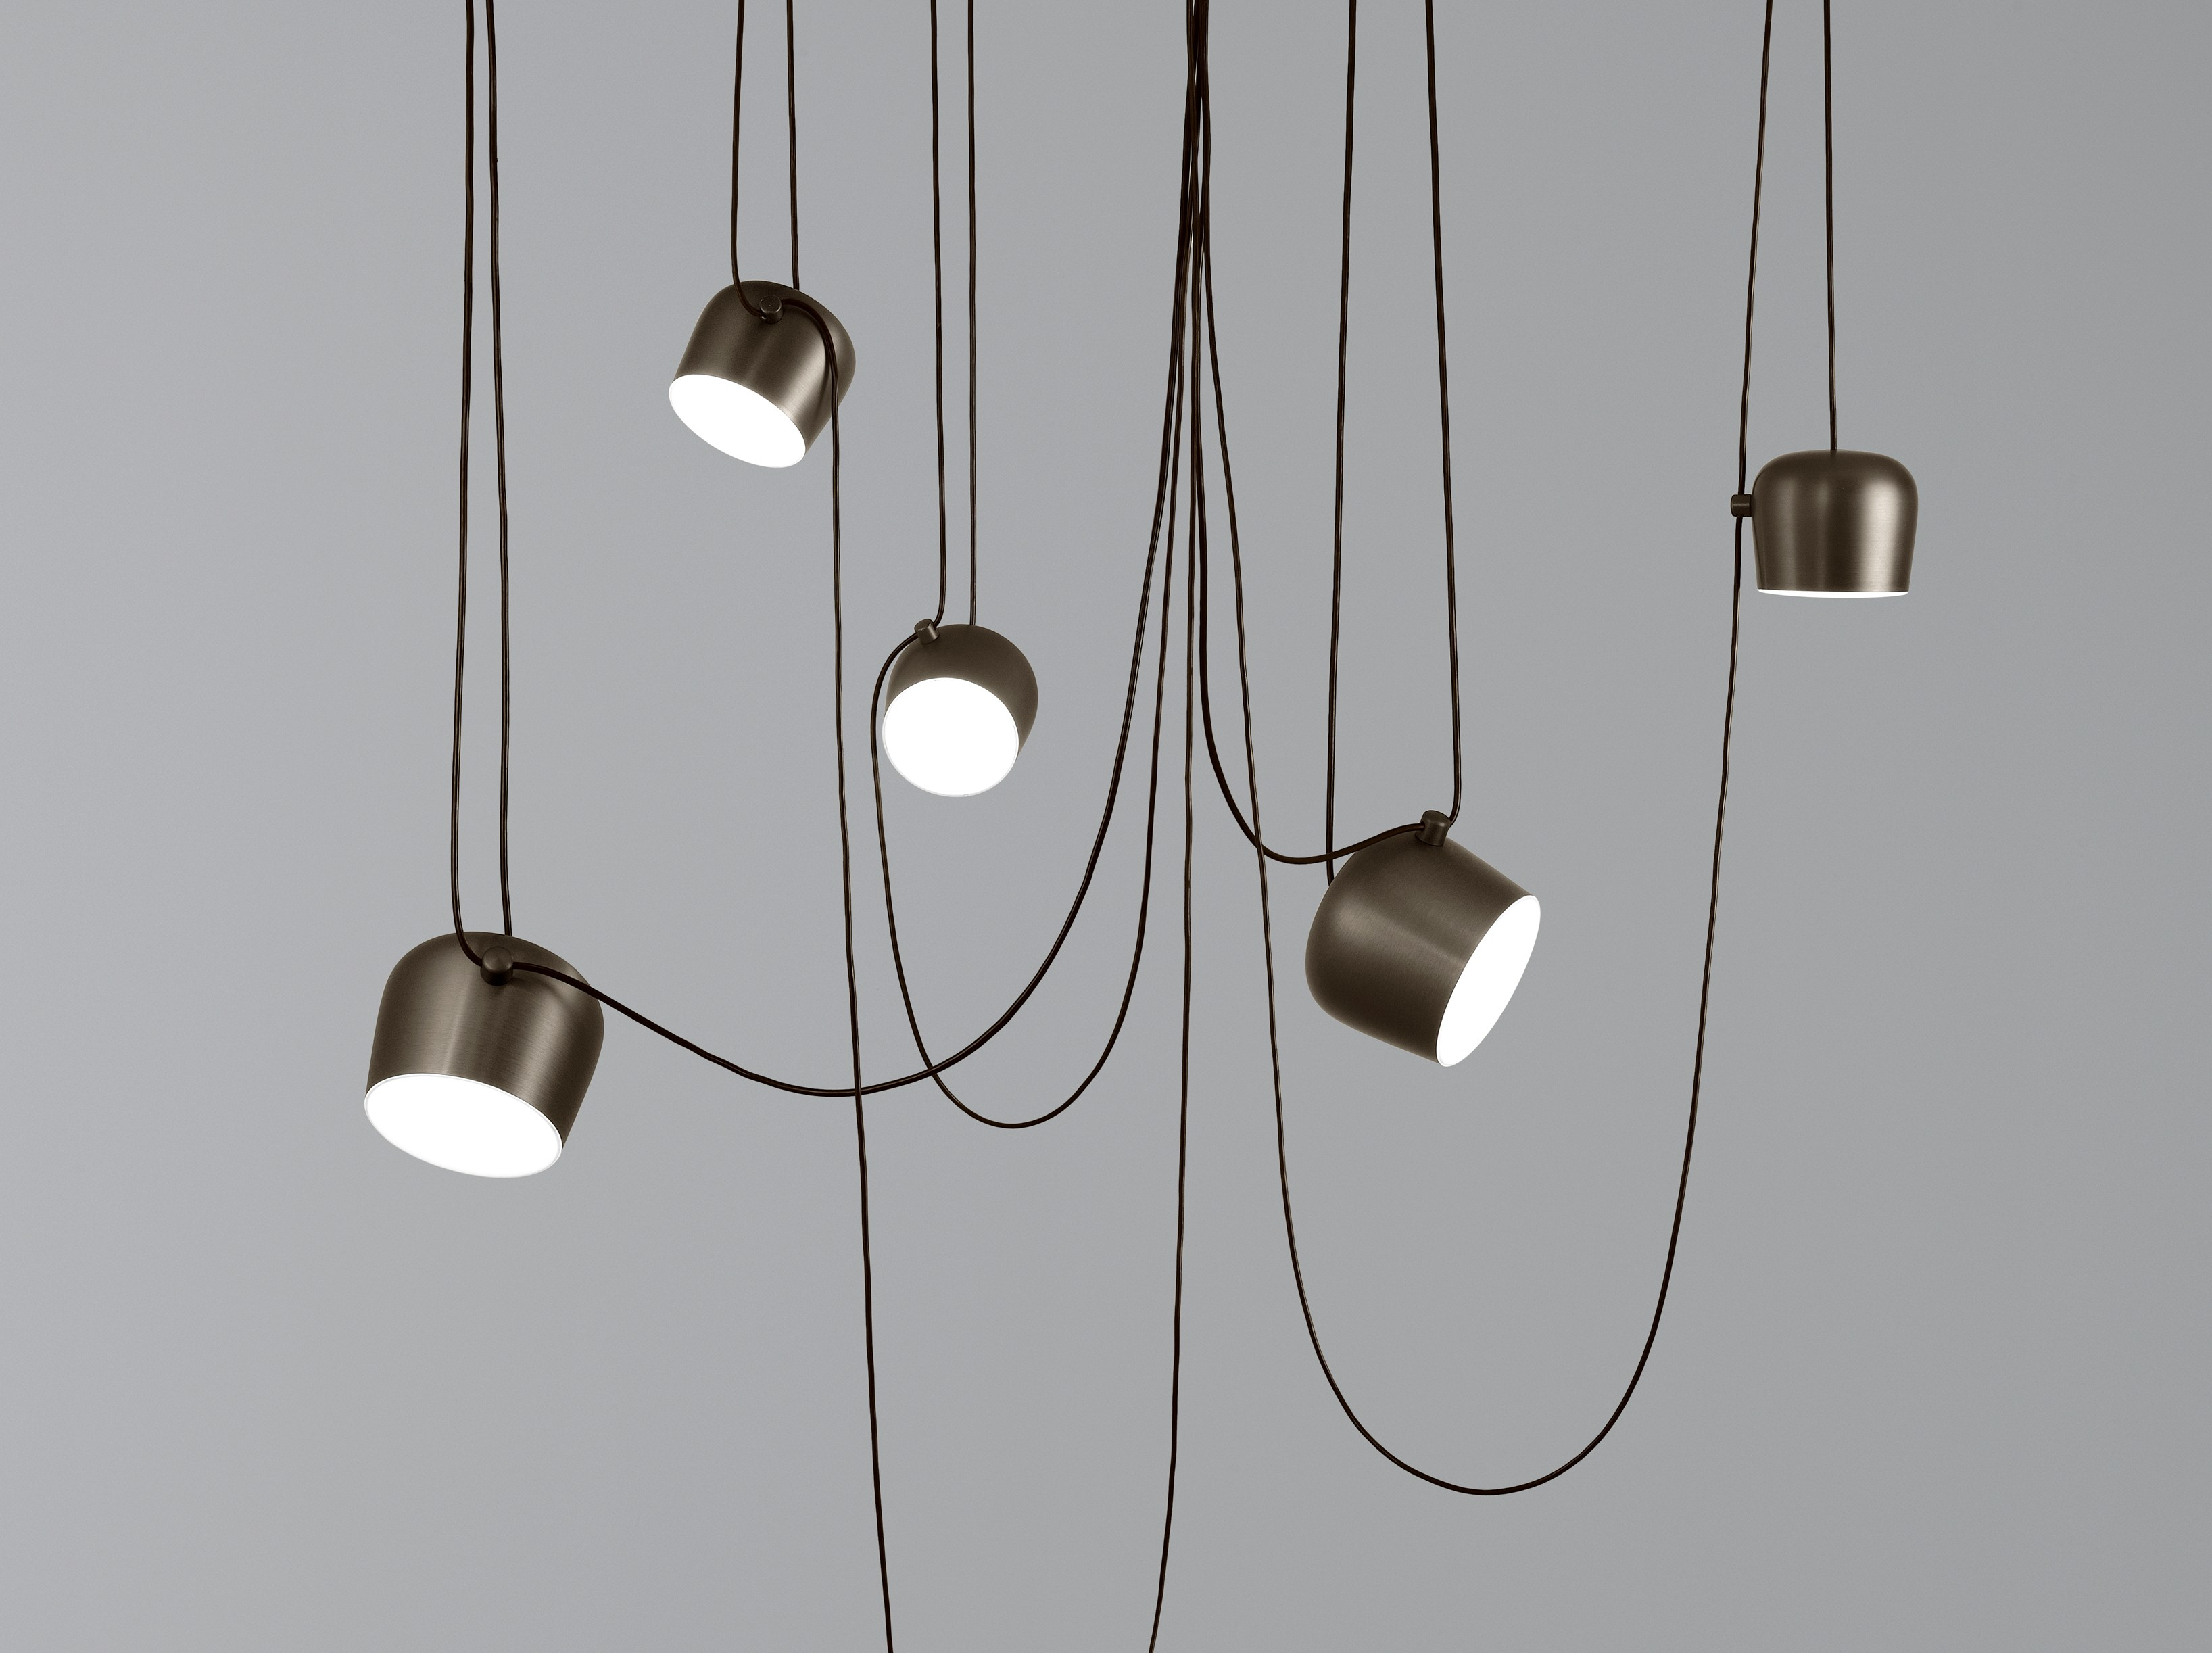 Floss Verlichting Aim By Flos Design Ronan And Erwan Bouroullec